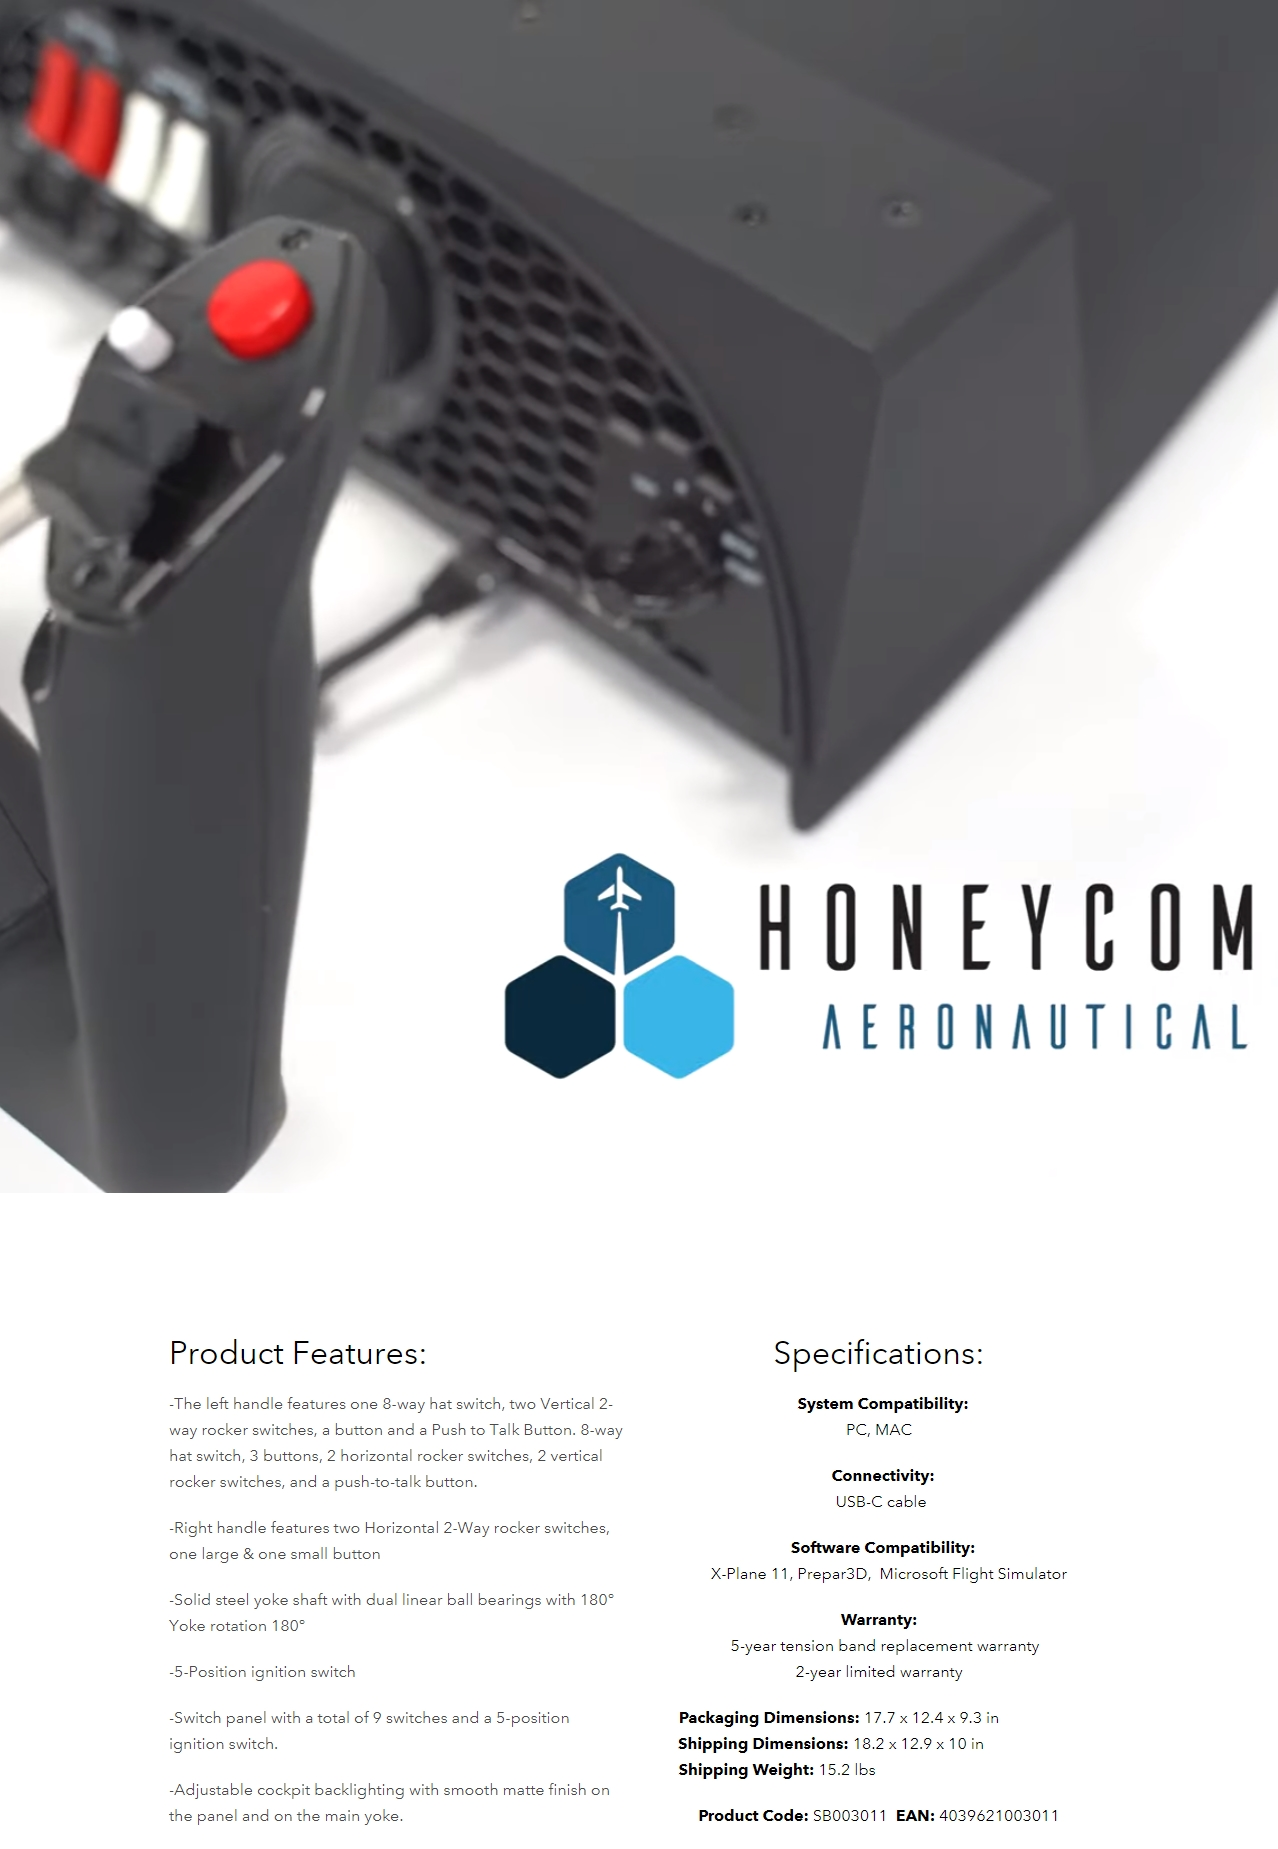 A large marketing image providing additional information about the product Honeycomb Alpha Flight Controls - Yoke & Switch Panel - Additional alt info not provided